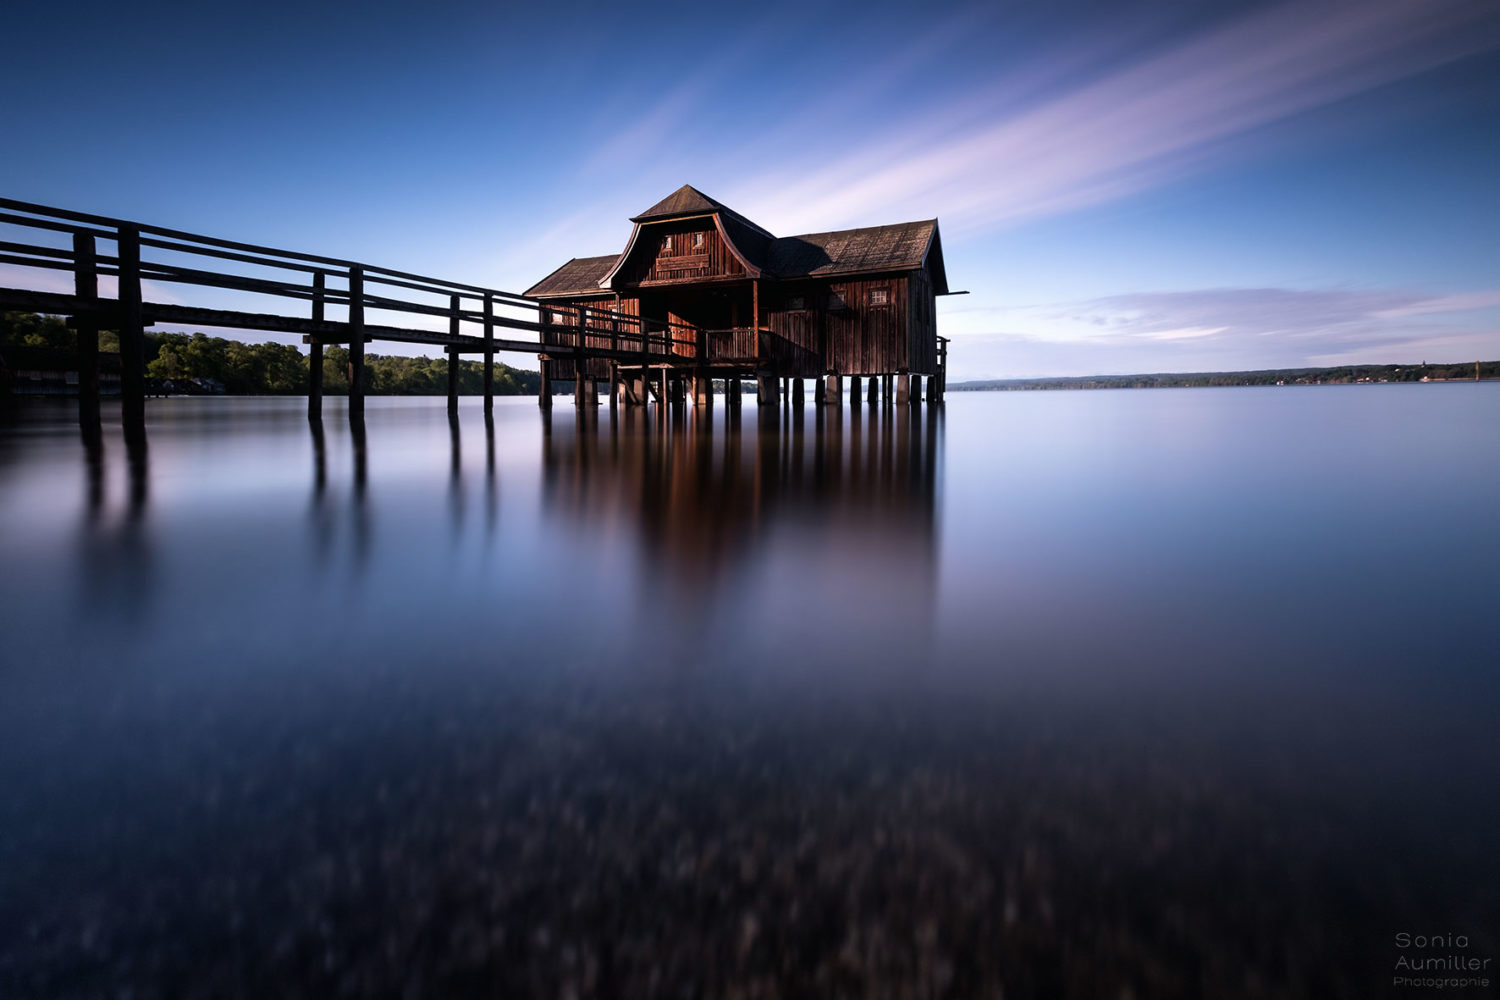 Ammersee © Sonia Aumiller